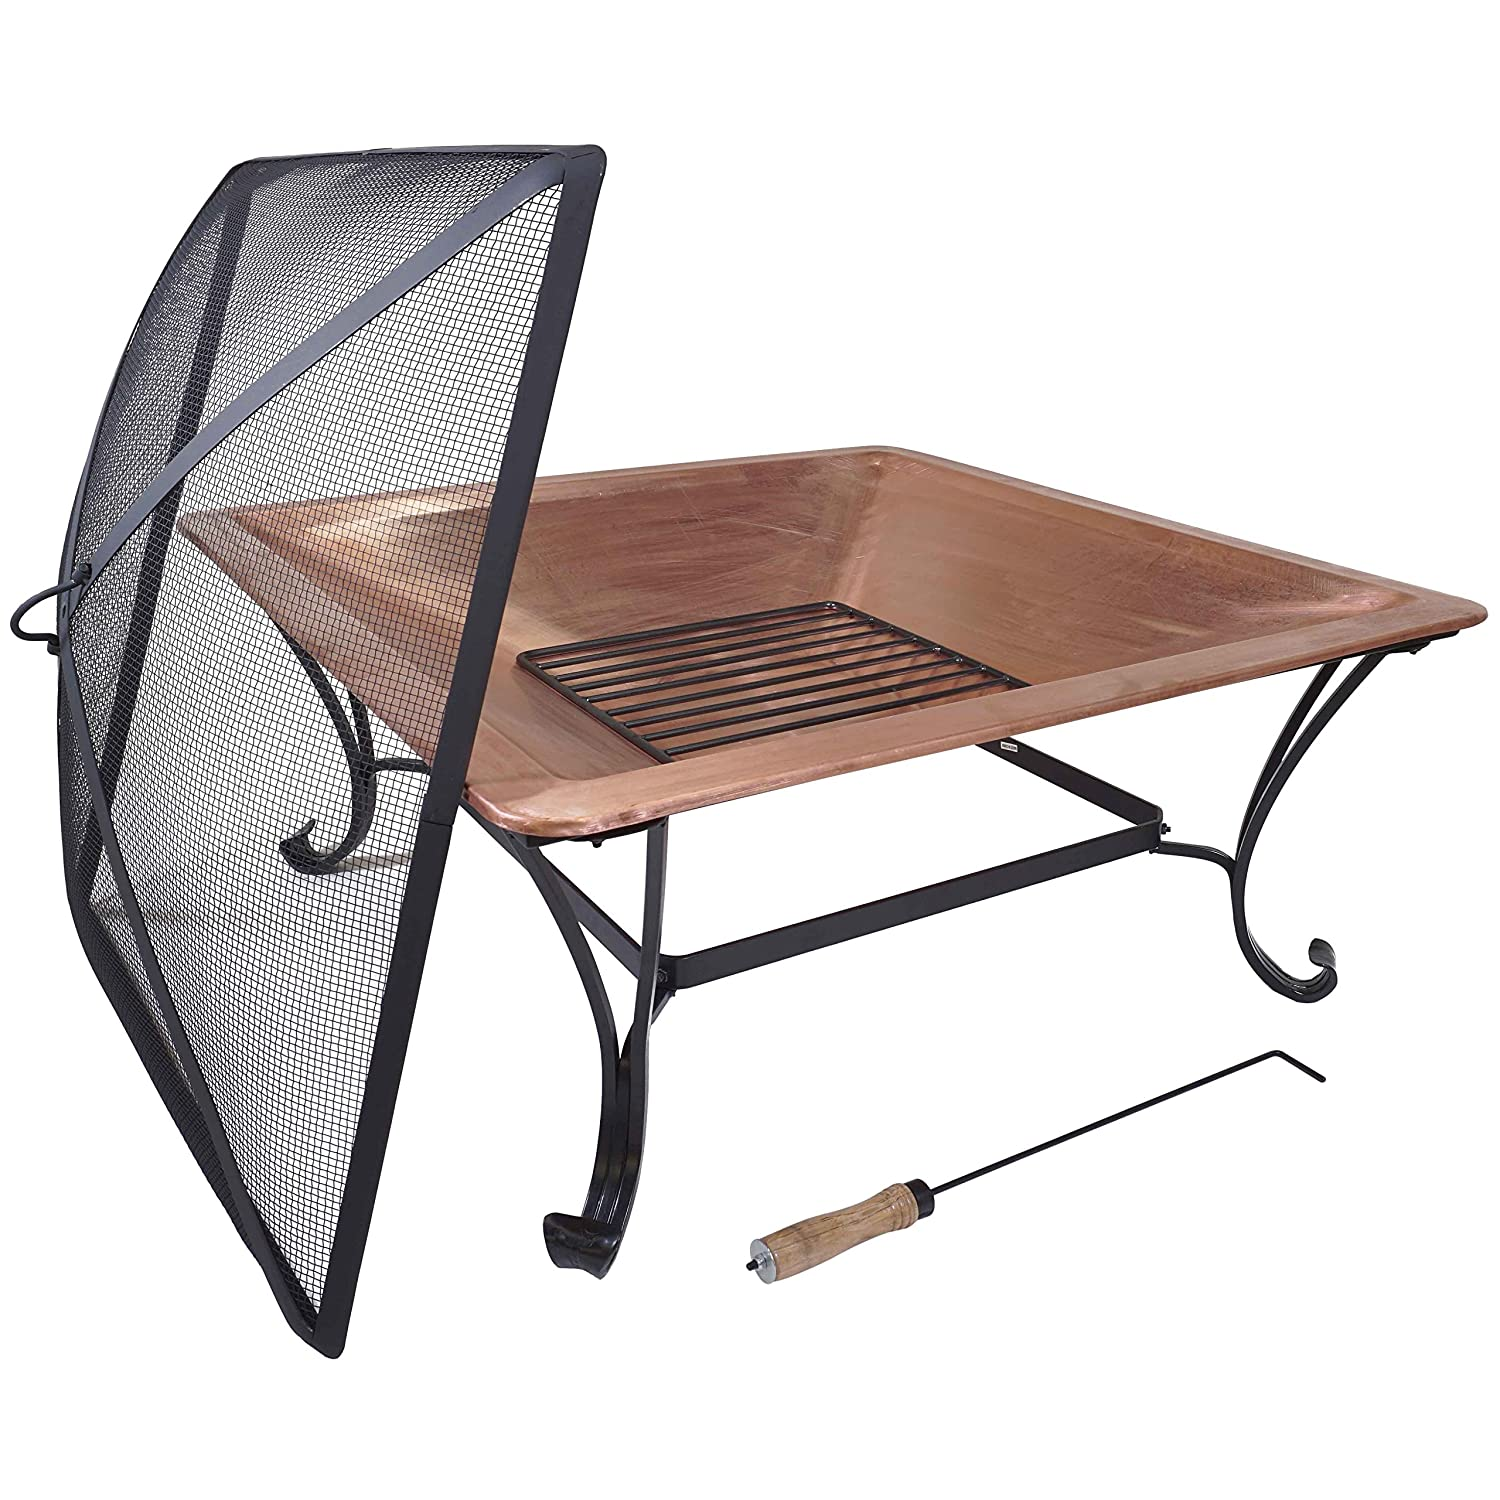 Titan 33 Square Copper Fire Pit Wood Burning Patio Deck Grill with Log Grate